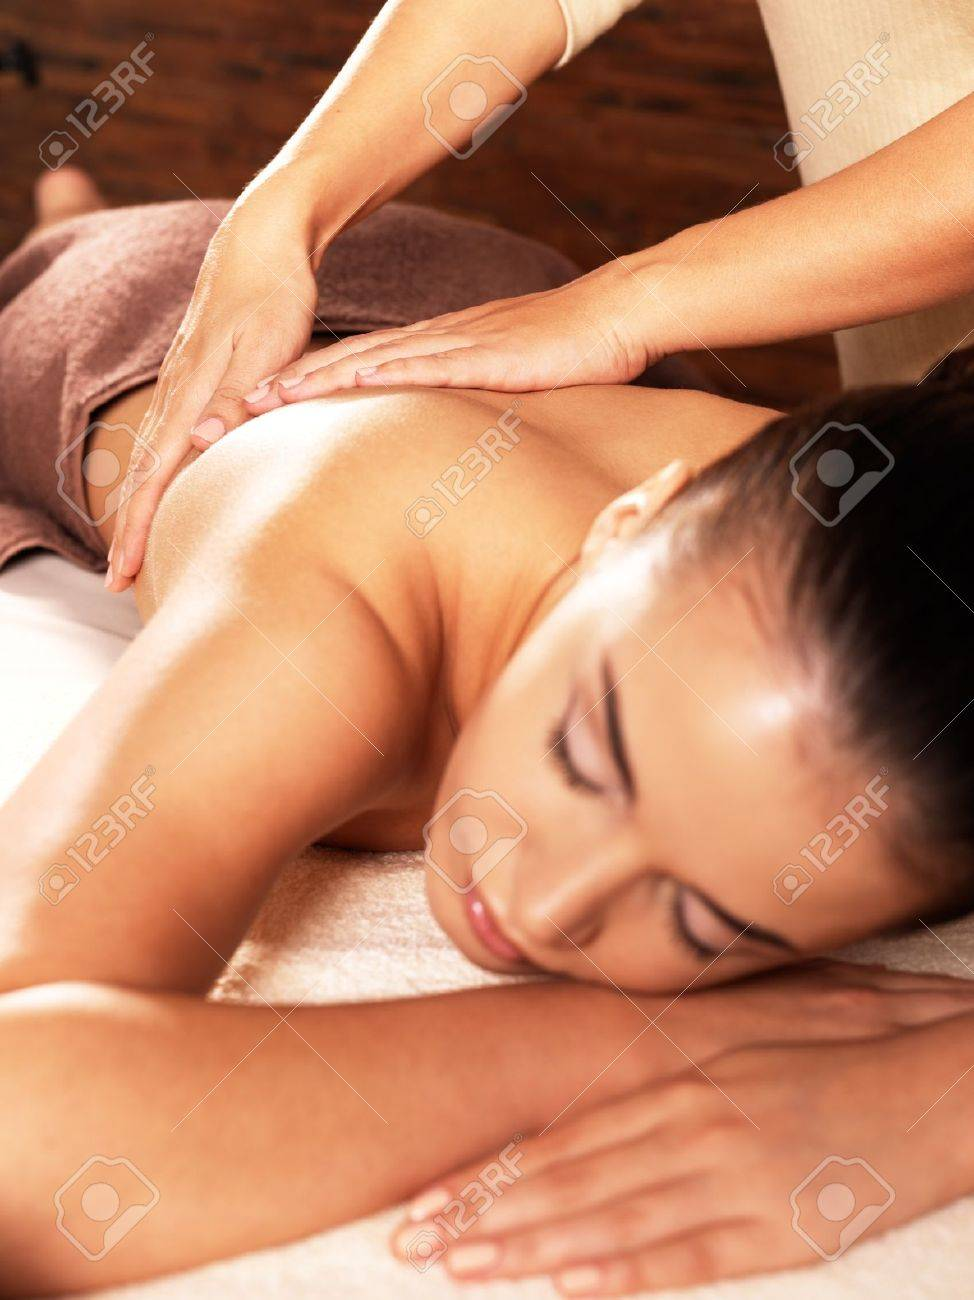 Masseur doing massage on woman body in the spa salon. Beauty treatment concept. Stock Photo - 16578459